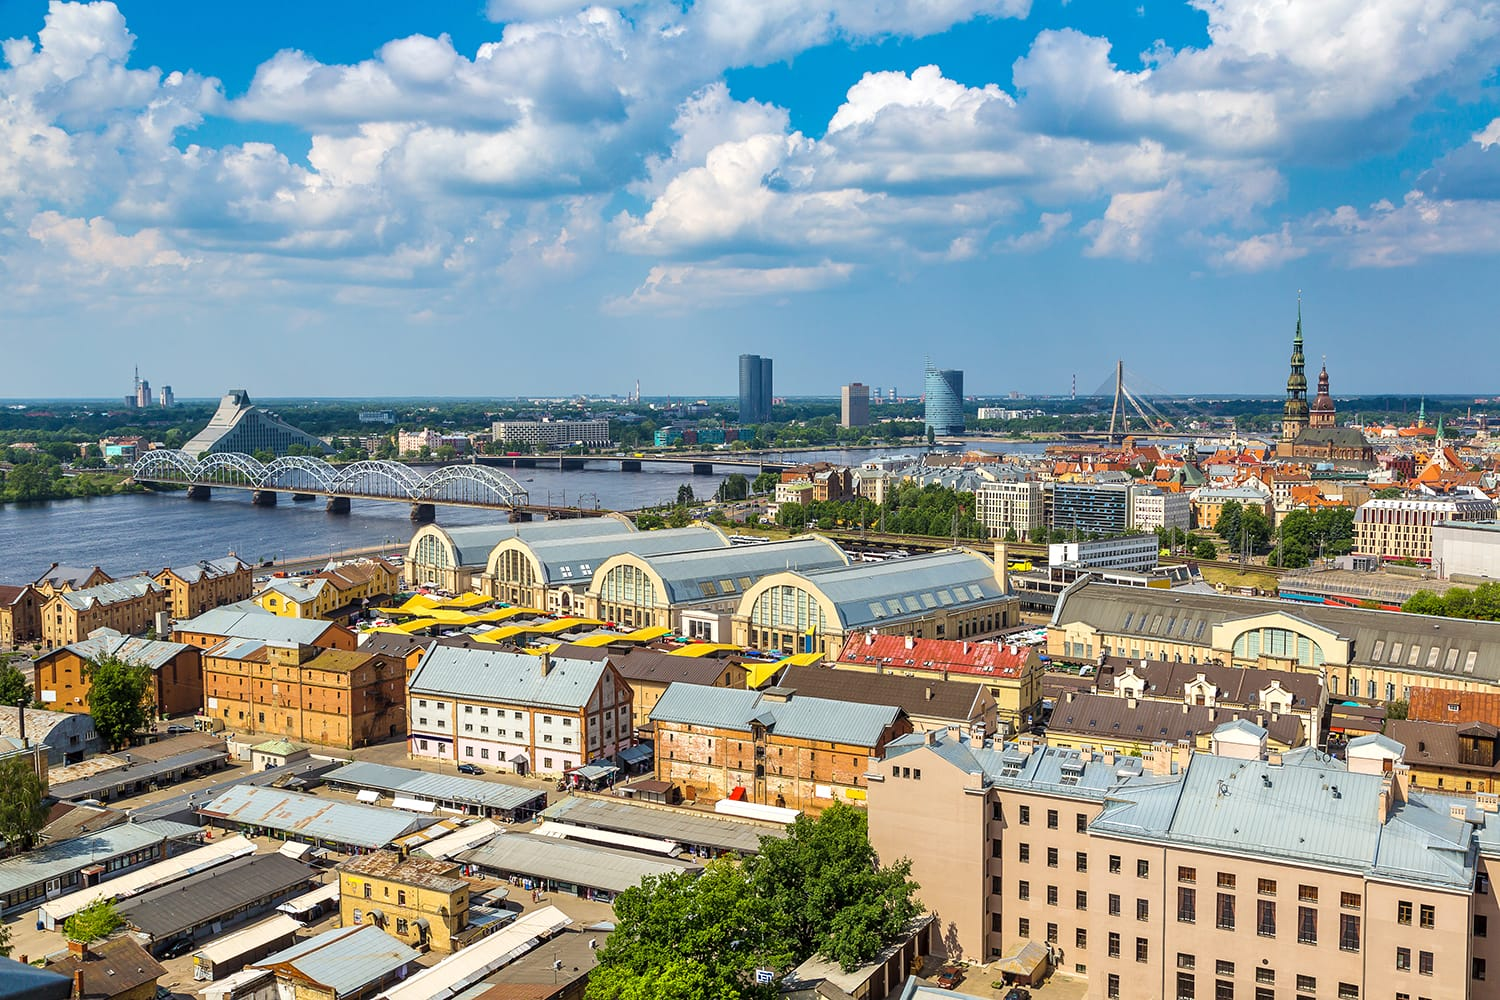 Panoramic aerial view of Riga in a beautiful summer day, Latvia